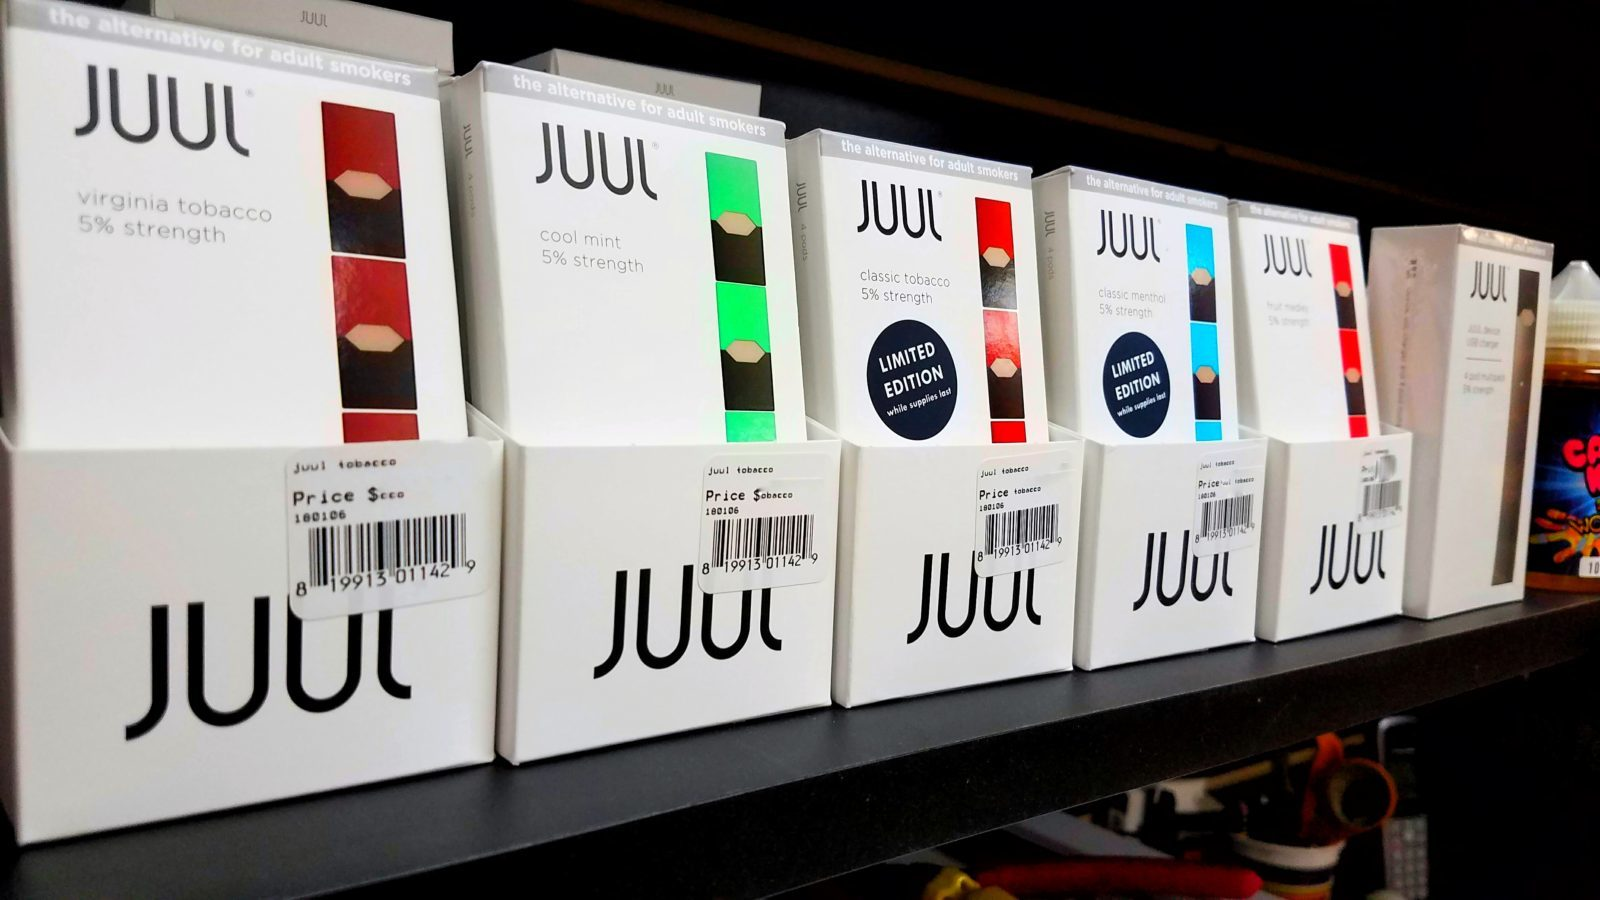 JUUL PODs and Starter Kits for Vaping